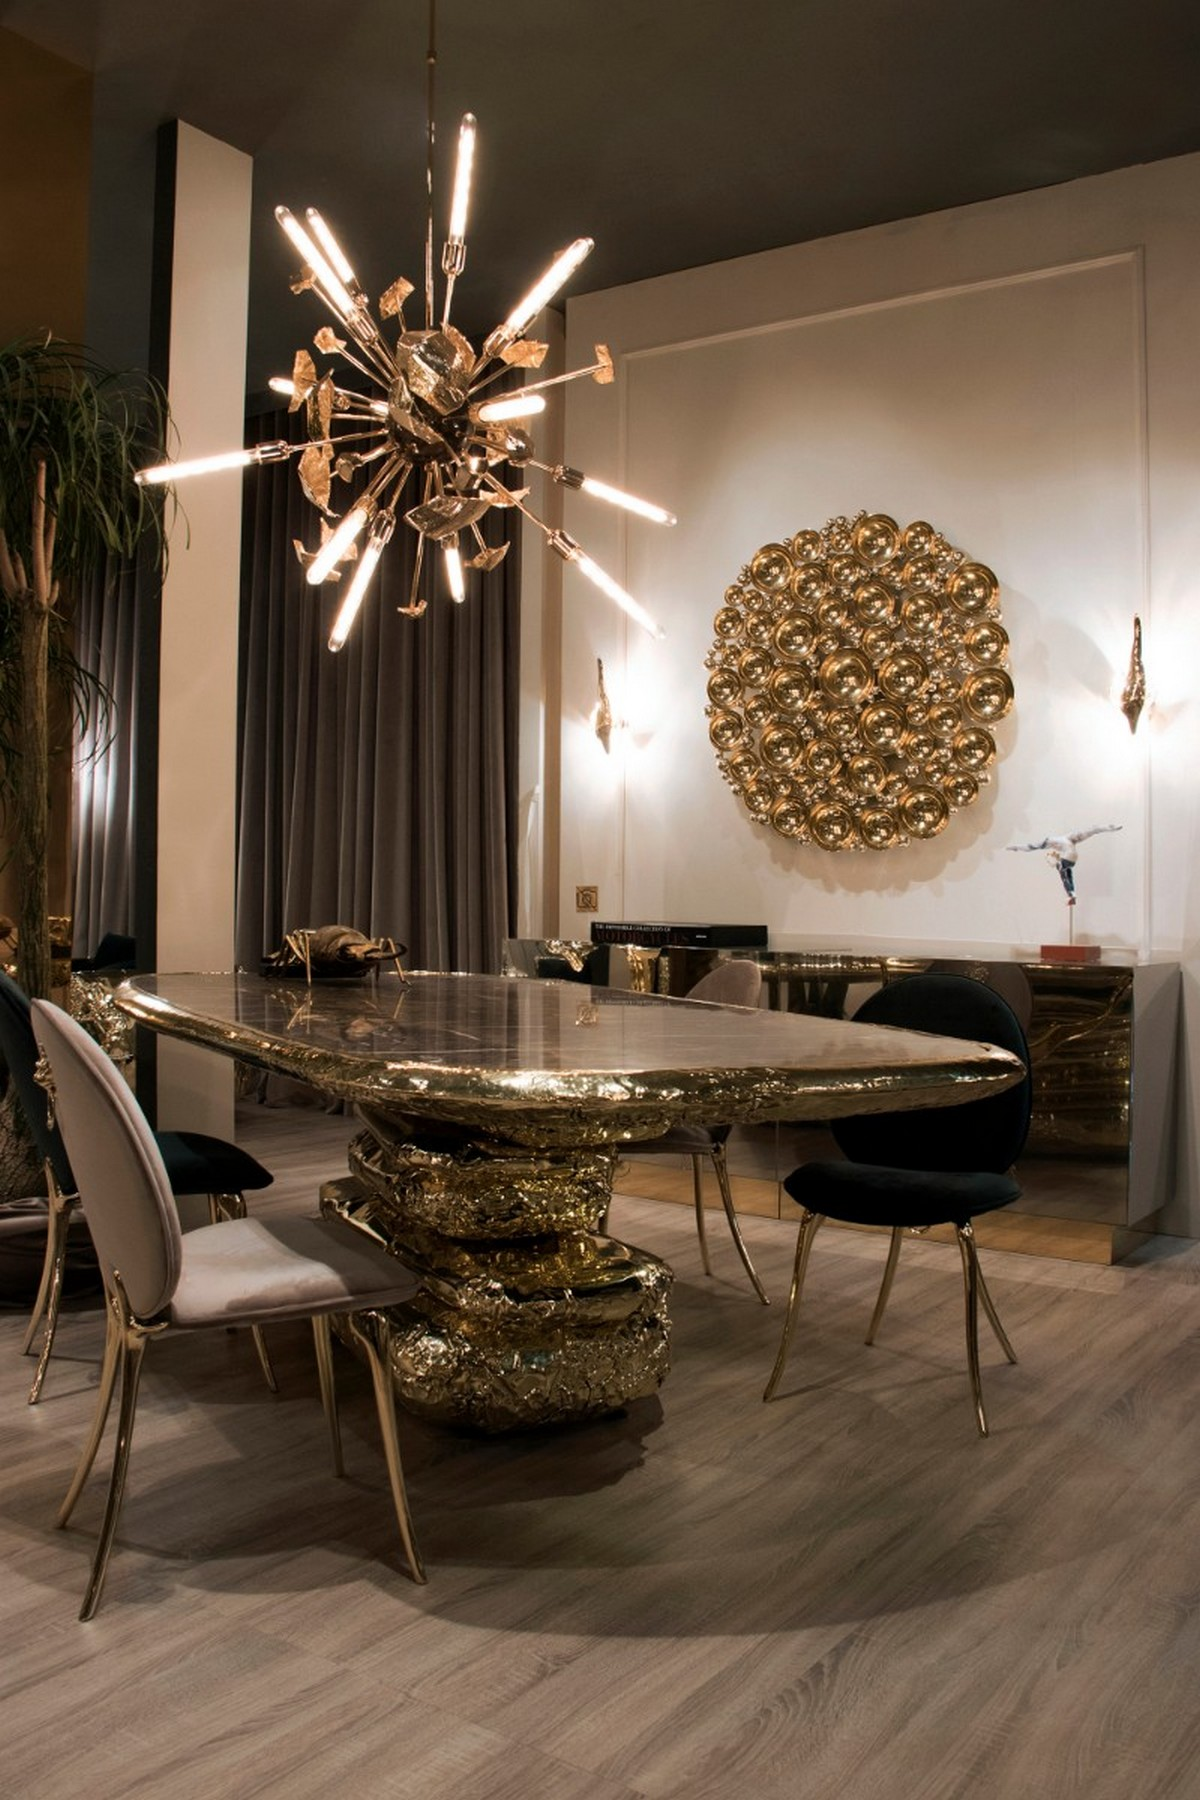 Artistic Dining Table Ideas For An Exquisite Dining Room Decor (Part II)  Artistic Dining Table Ideas For An Exquisite Dining Room Decor (Part II) bl6